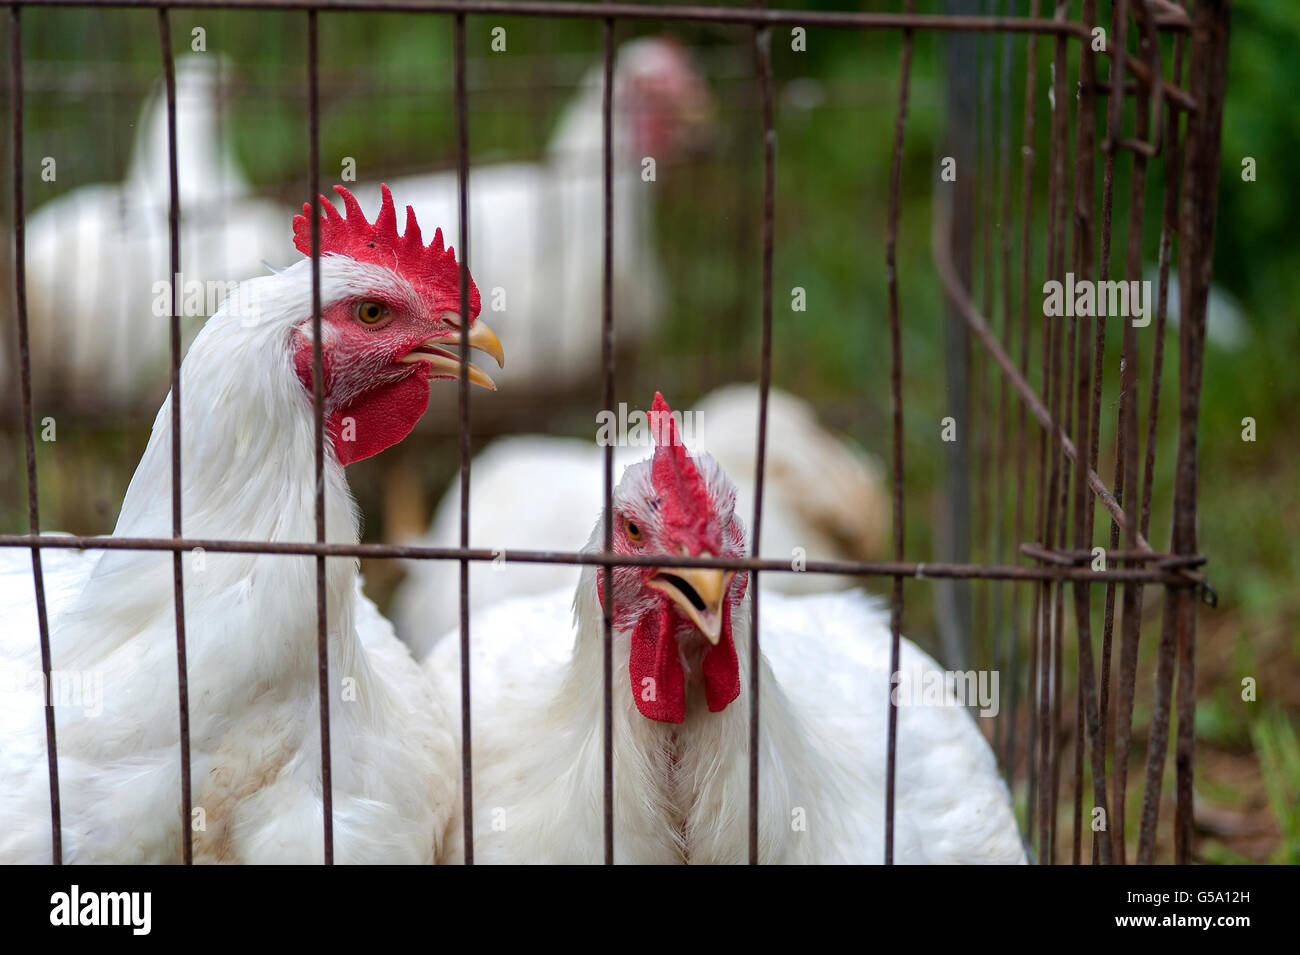 white hens in wire cage - Stock Image